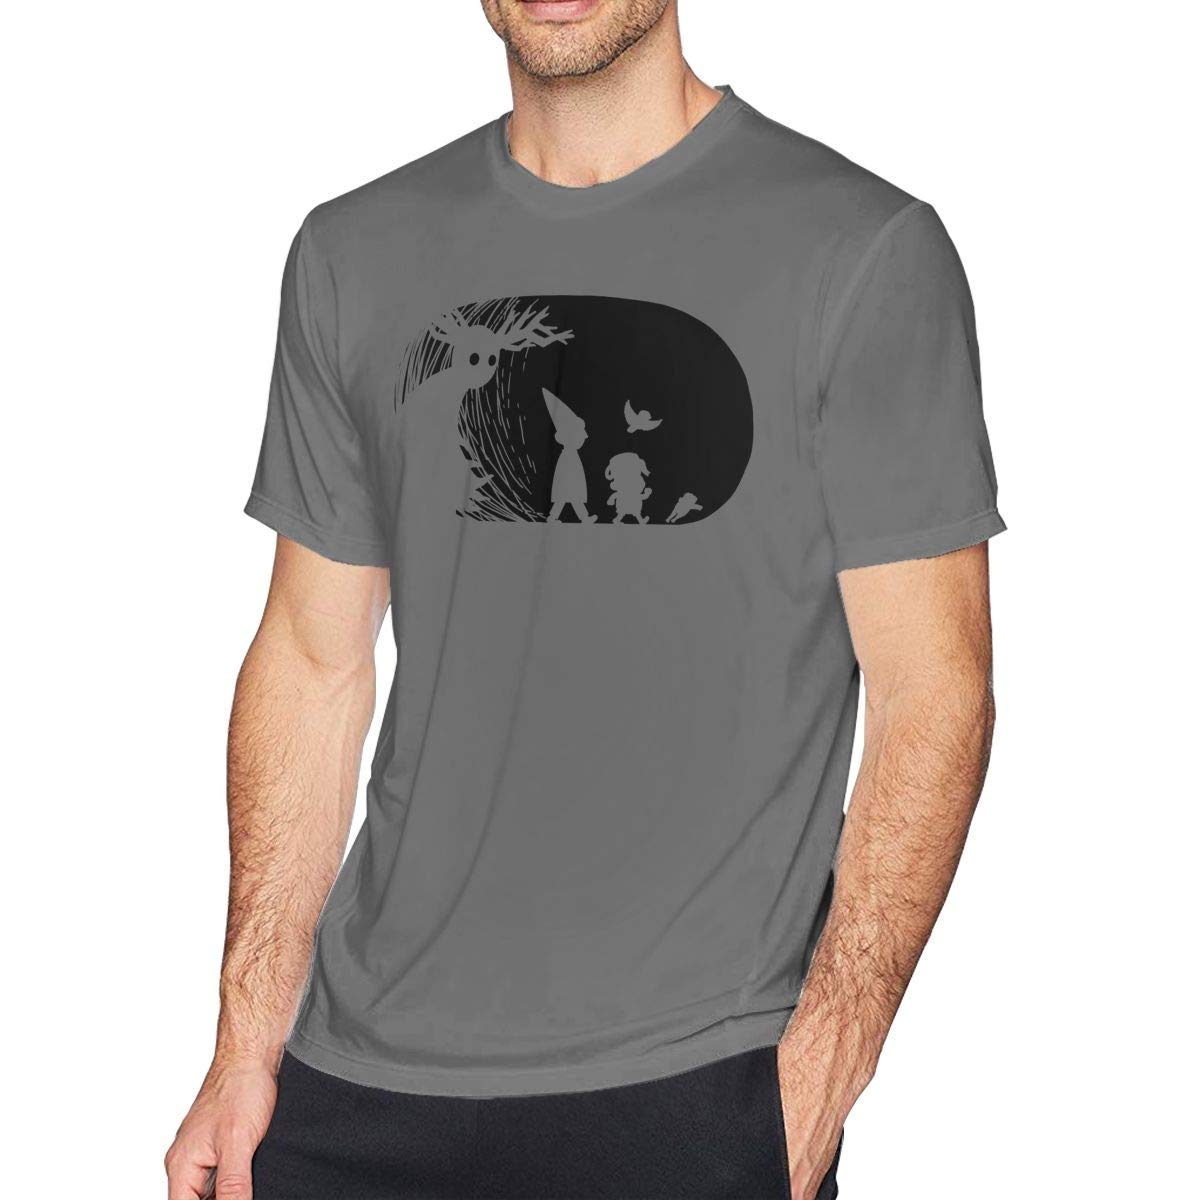 HEETENGGR O-Neck Fashion Over The Garden Wall Graphy Short Sleeve T-Shirt for Mens and Boys Black